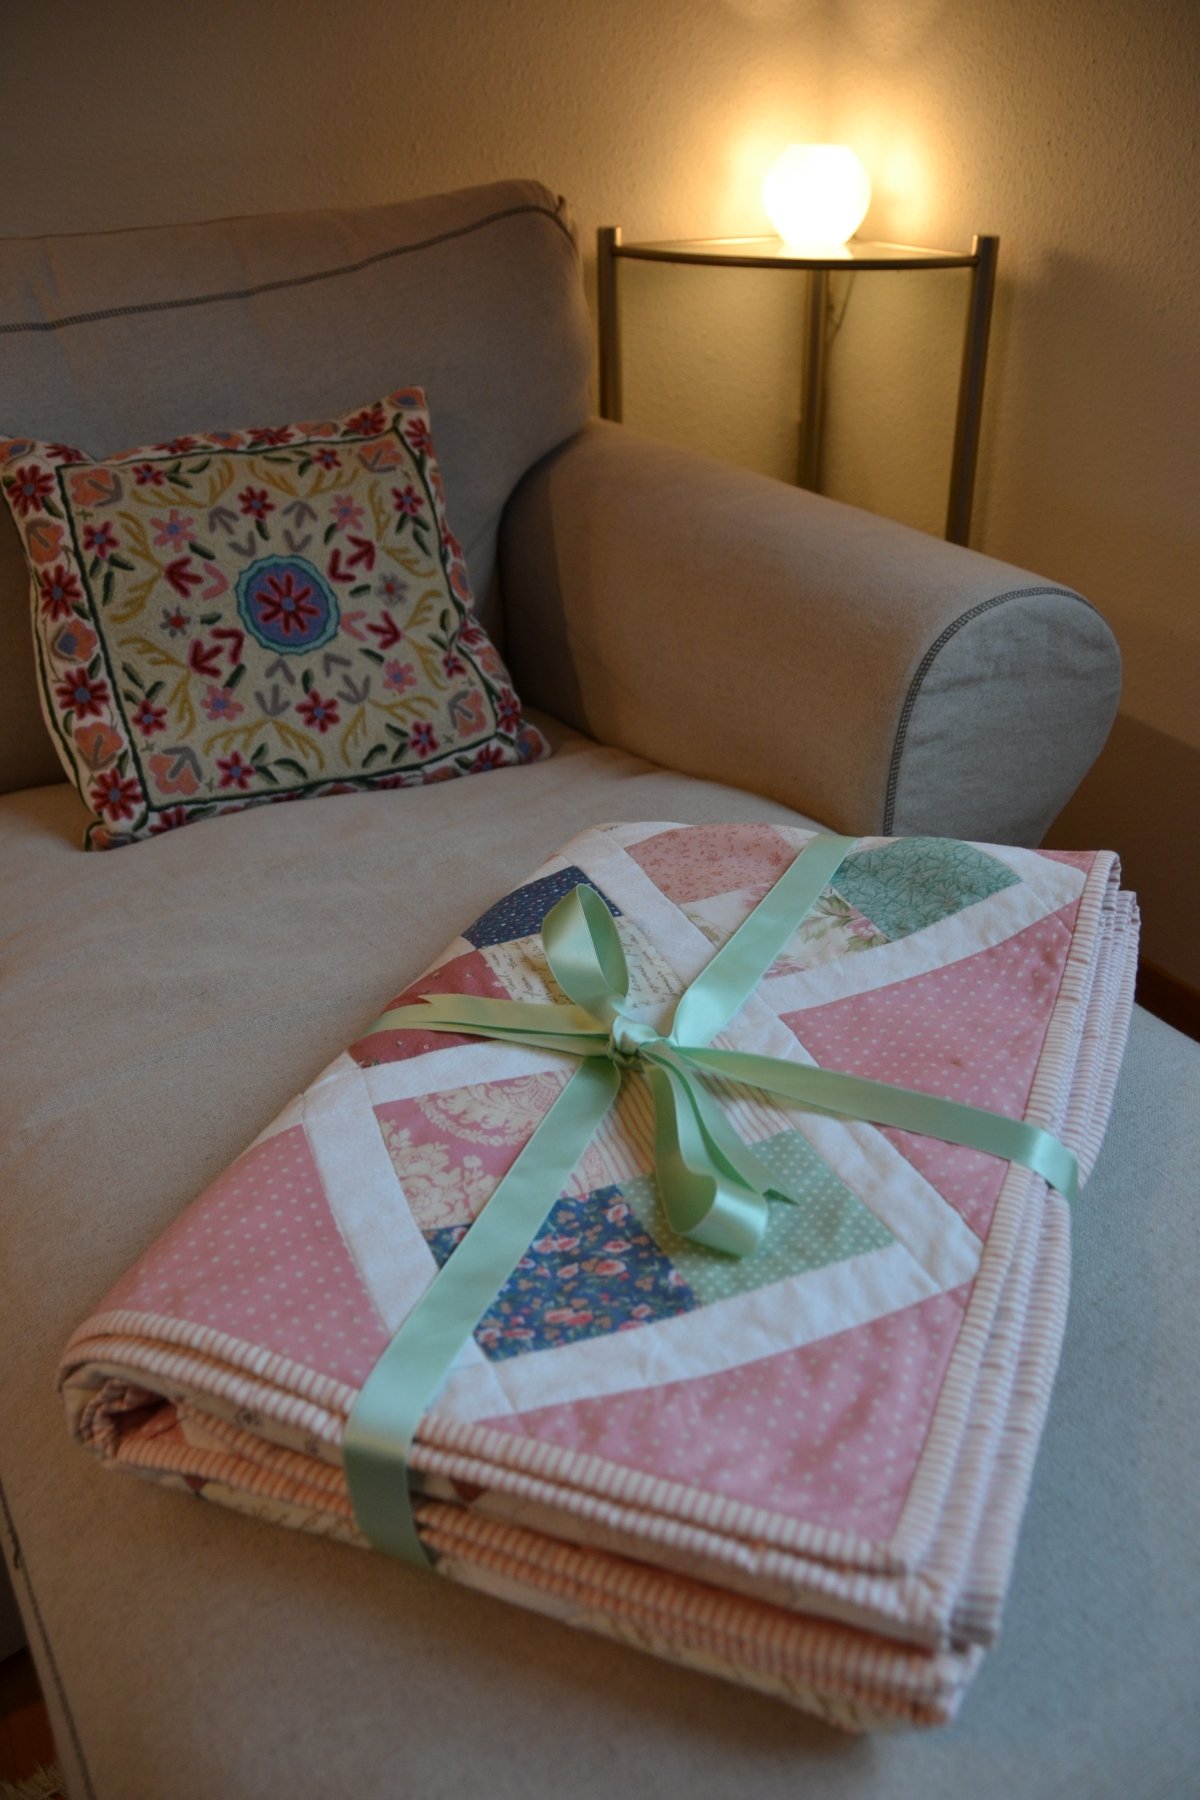 My First Quilt All packed up and ready to send to my niece Stephanie